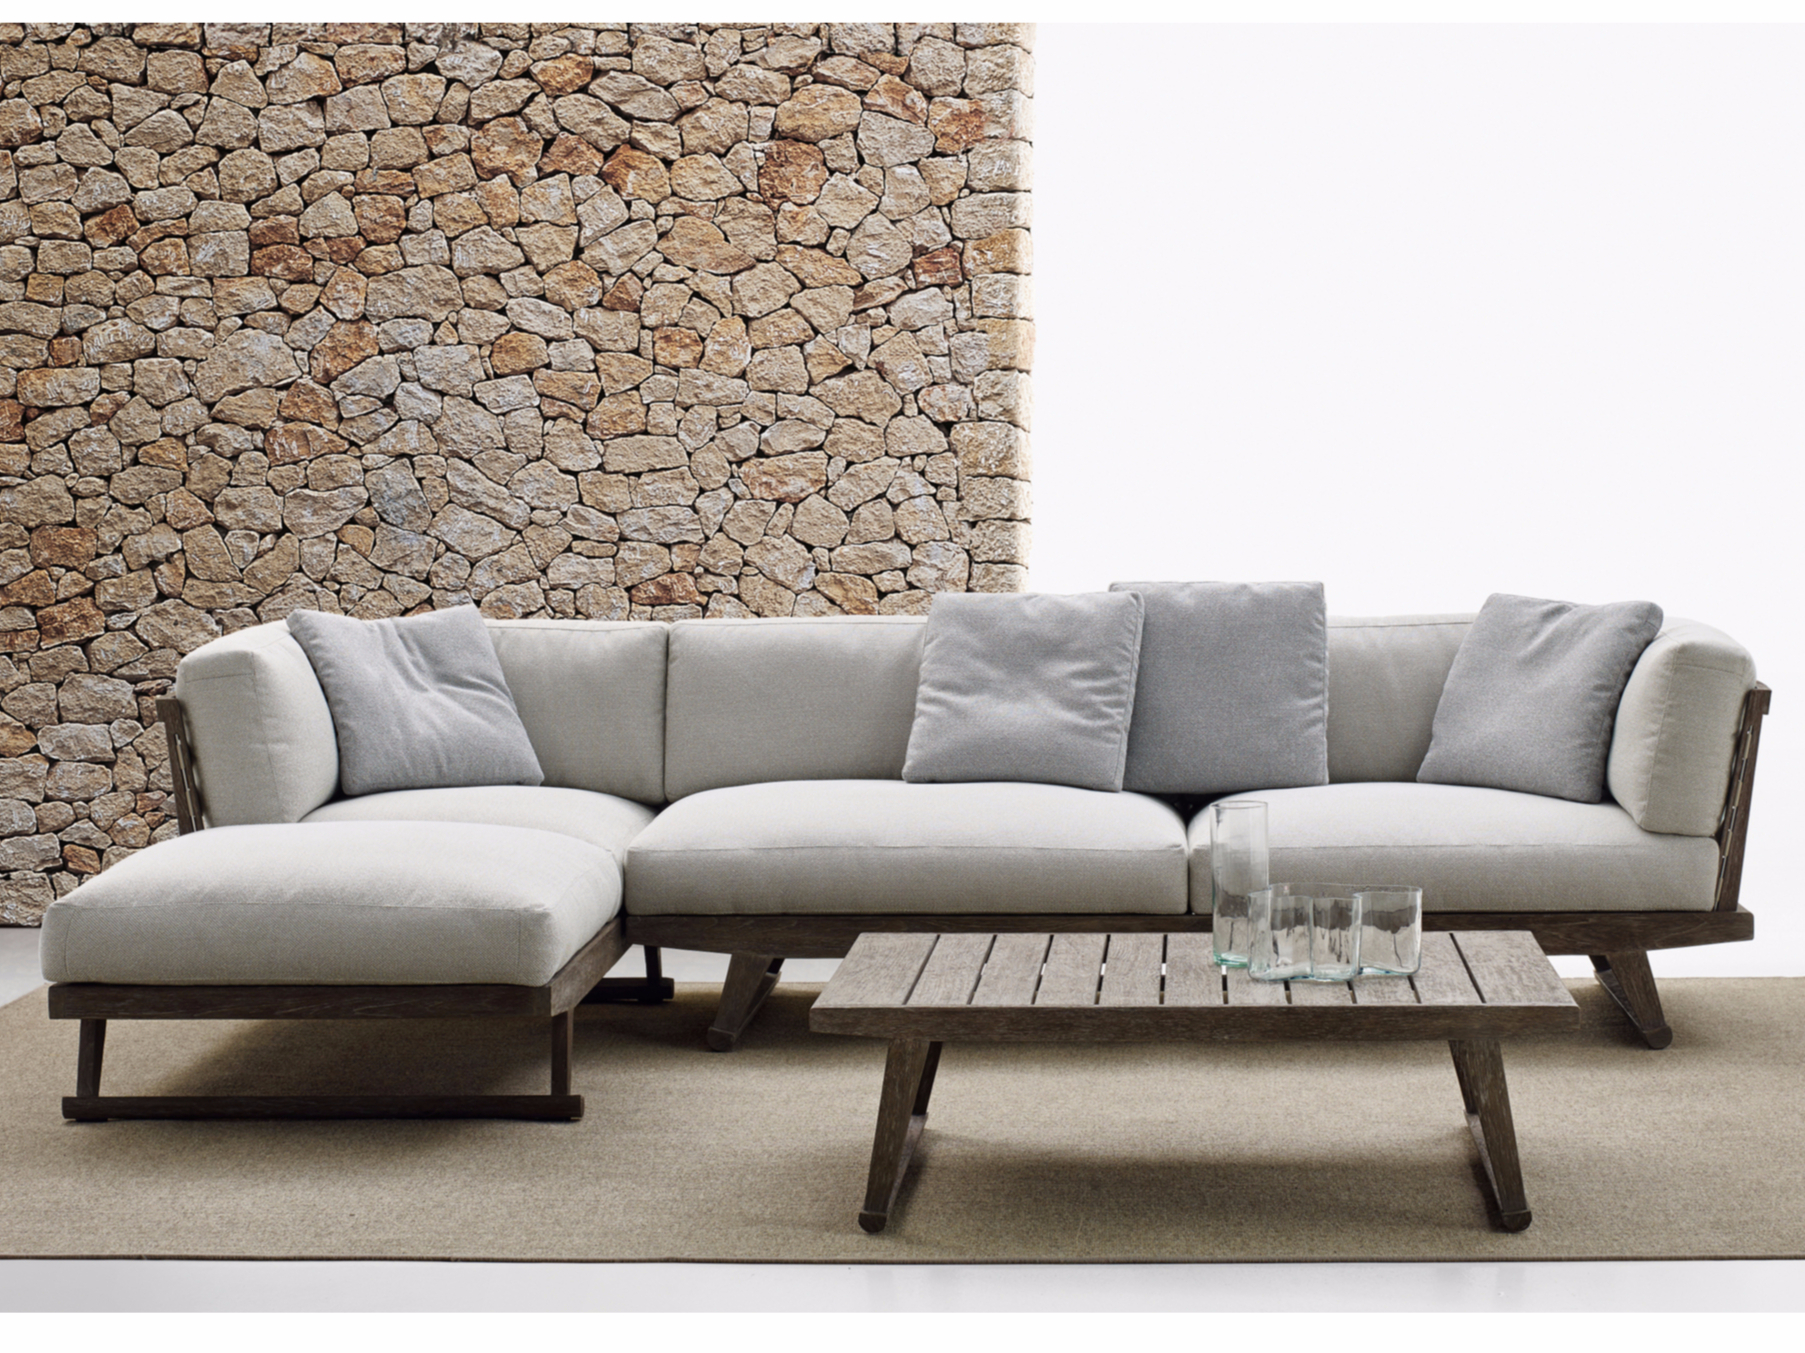 Outdoor Couch Gio Sofa With Chaise Longue Gio Collection By B Andb Italia